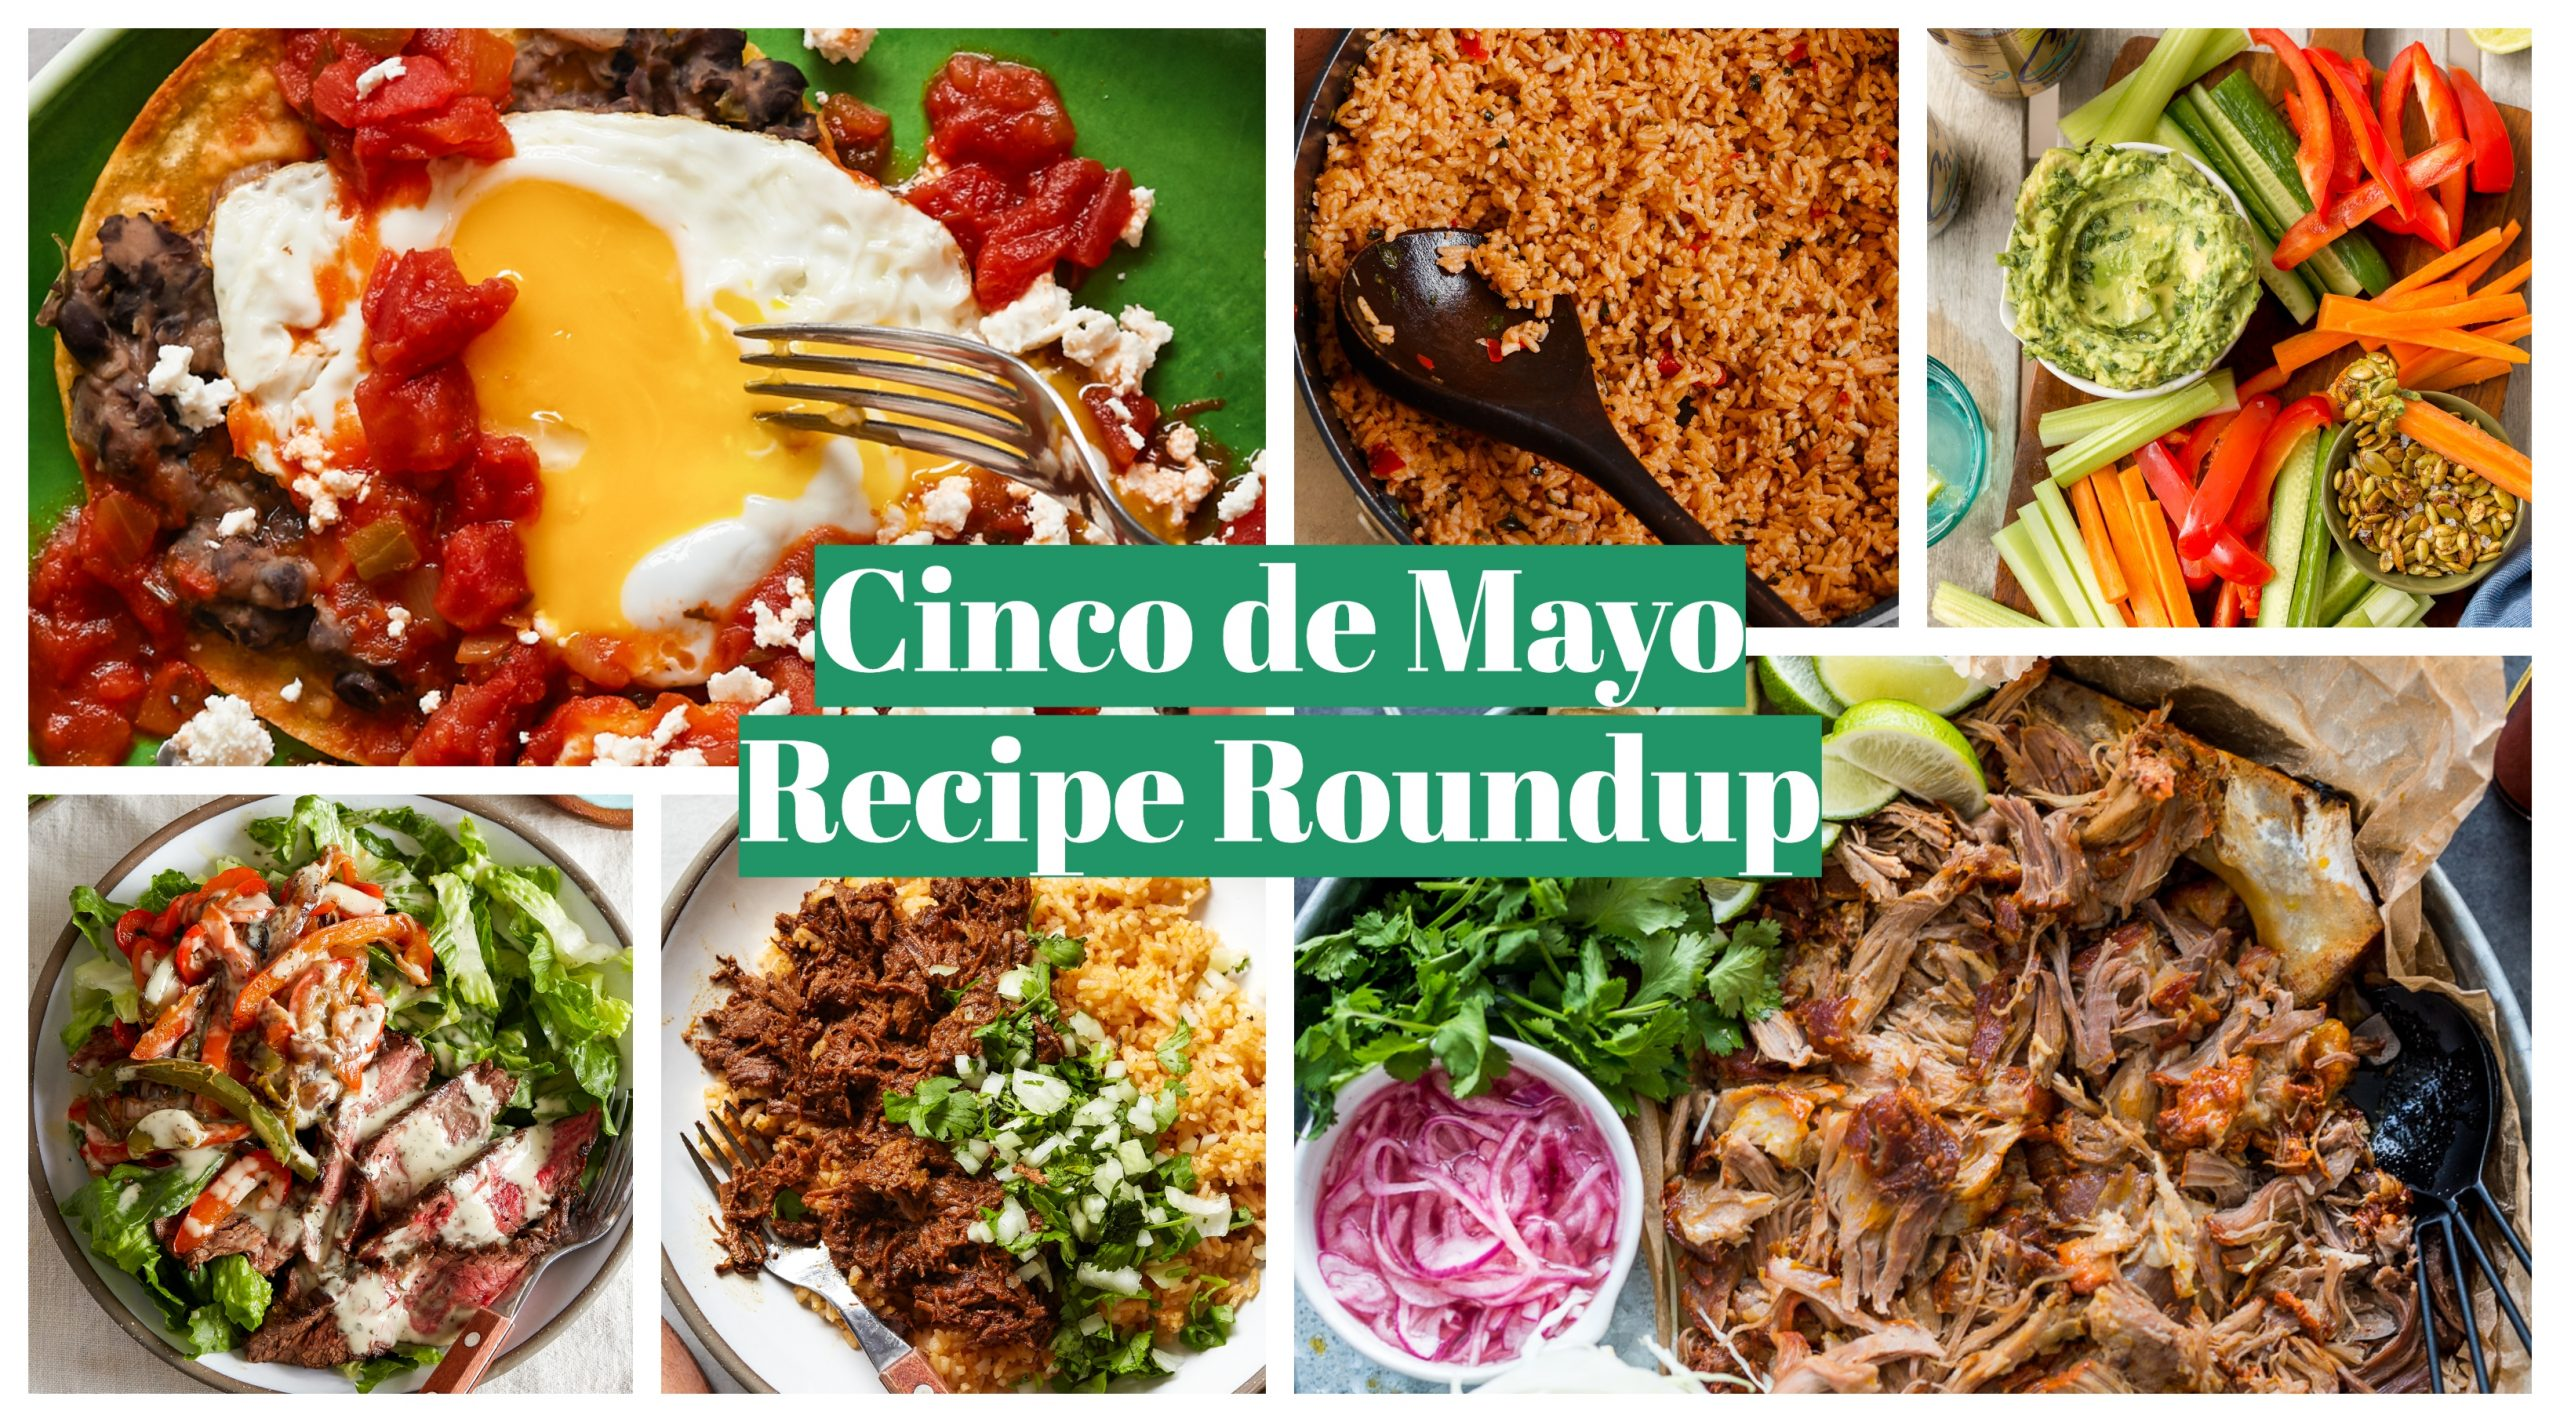 Cinco de Mayo Recipe Roundup Paleo Primal Gourmet Whole30